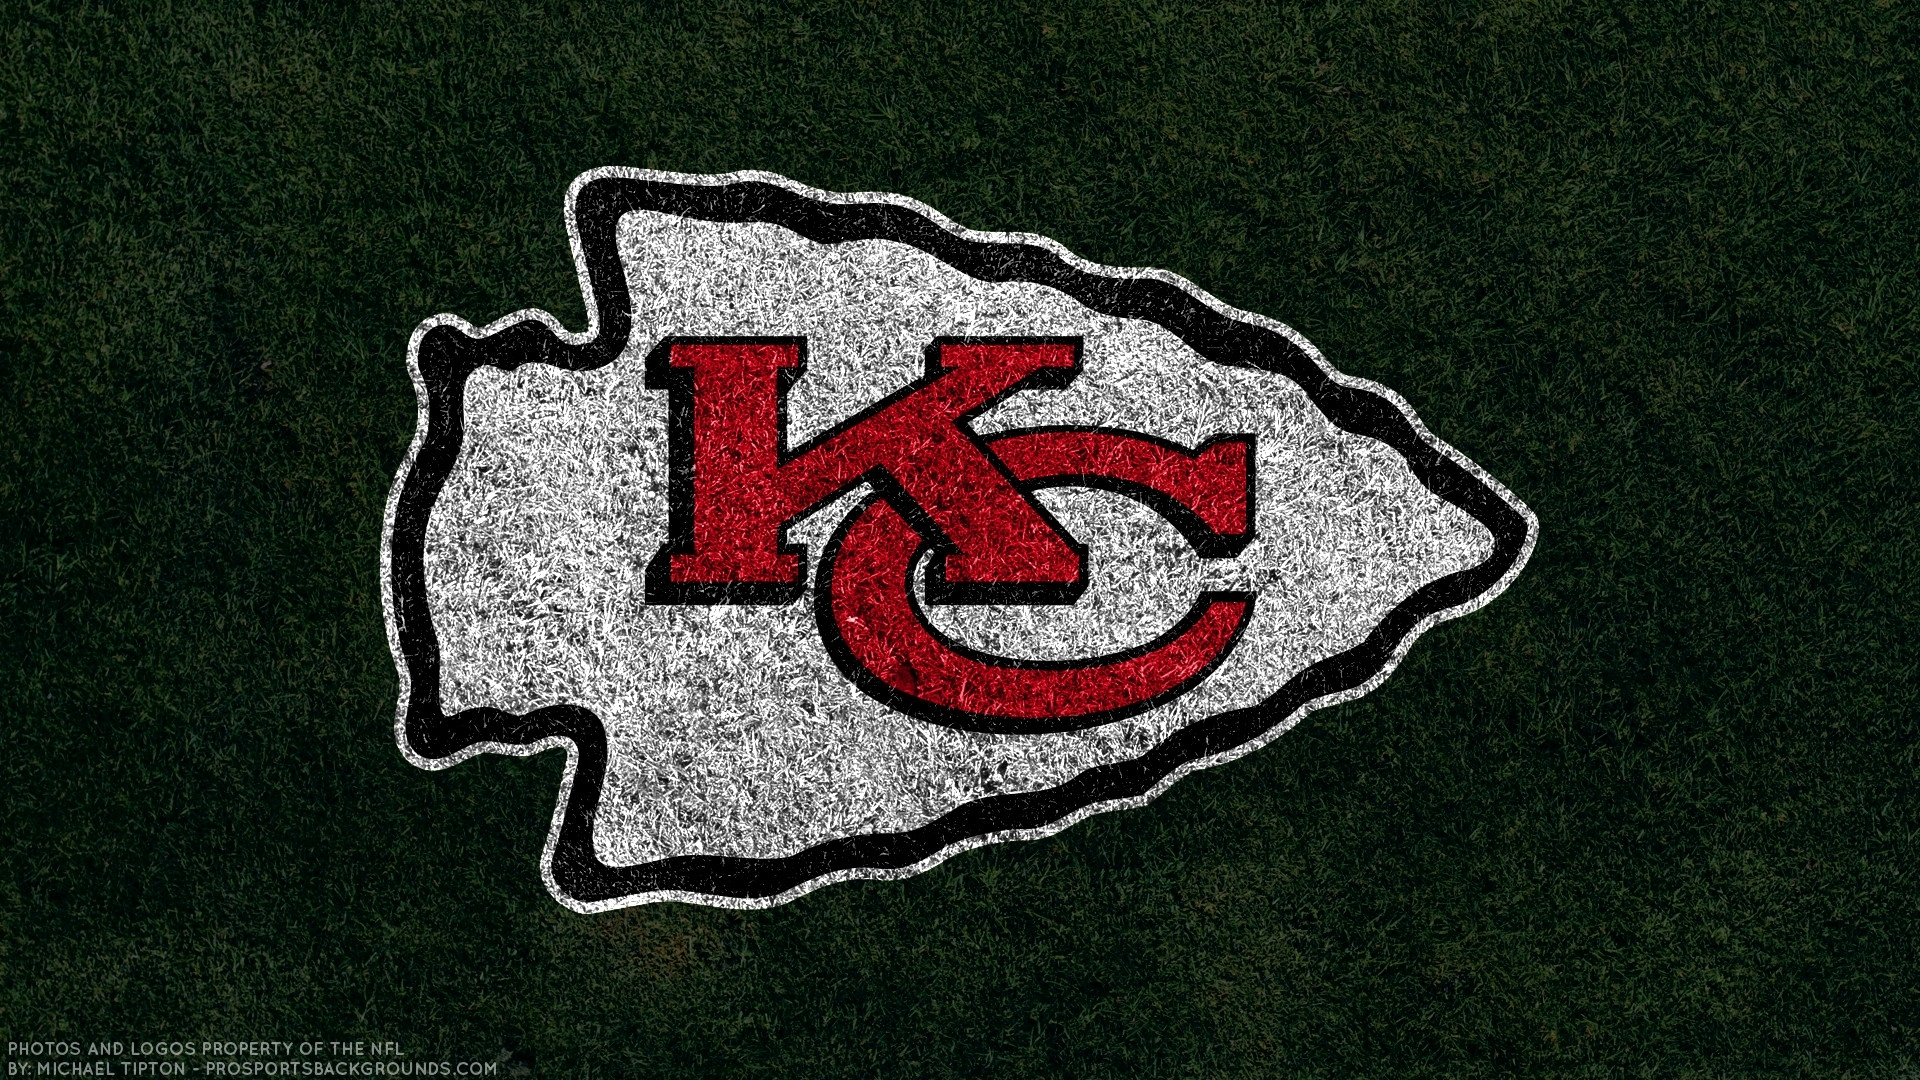 kc chiefs wallpaper and screensavers (64+ images)